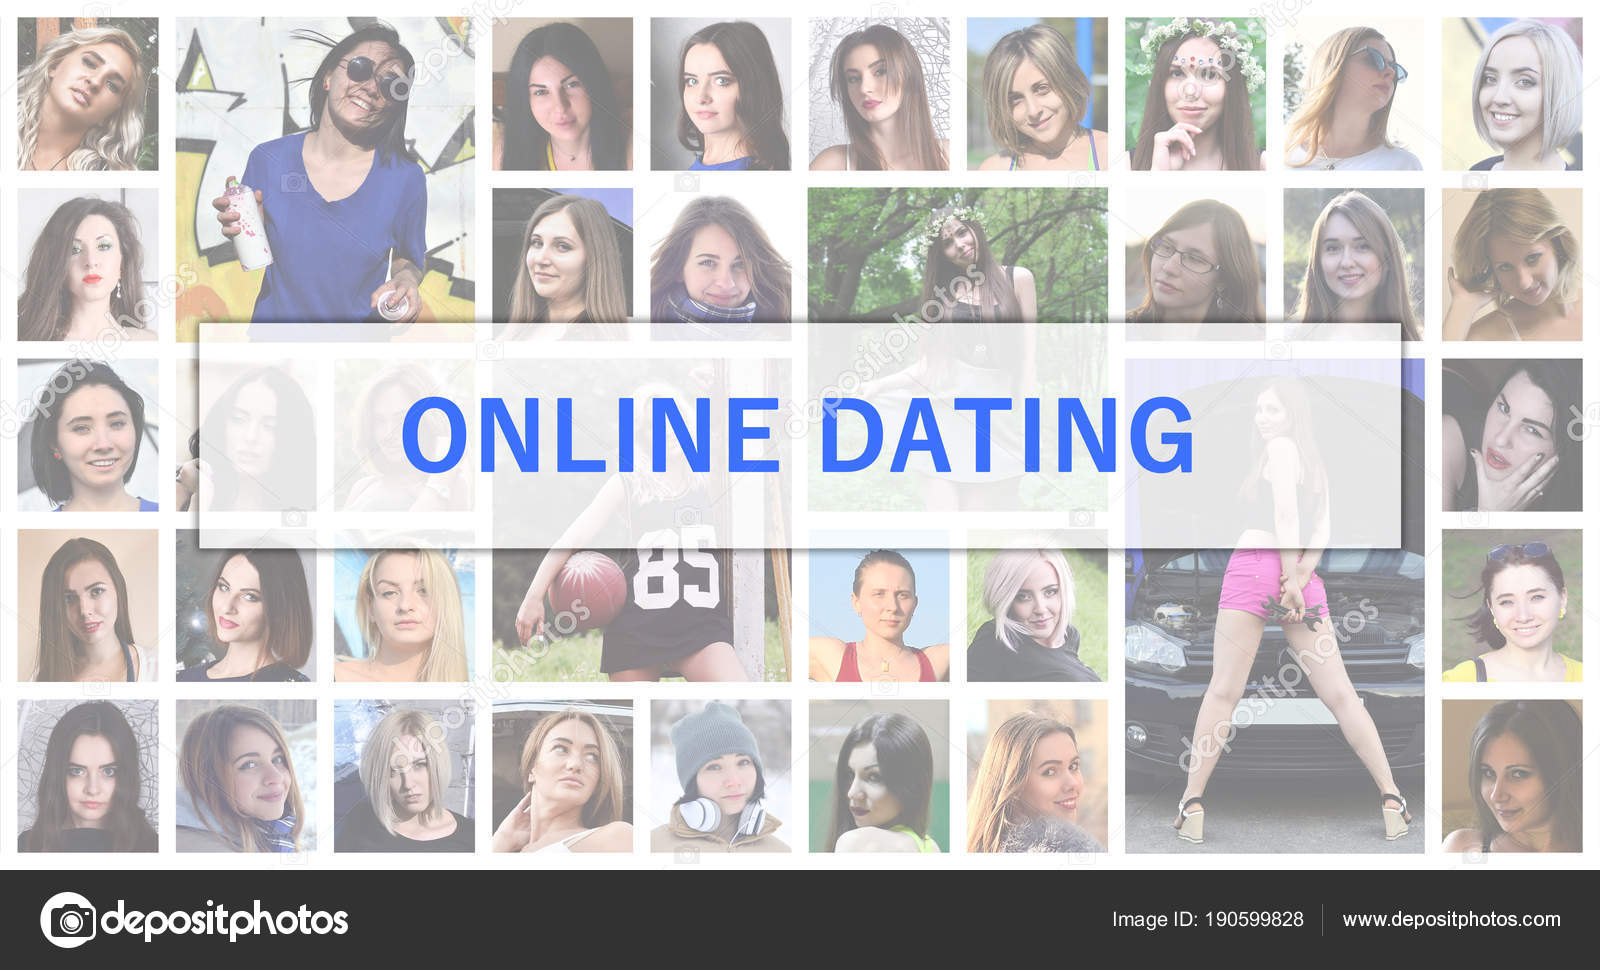 Ted com online dating